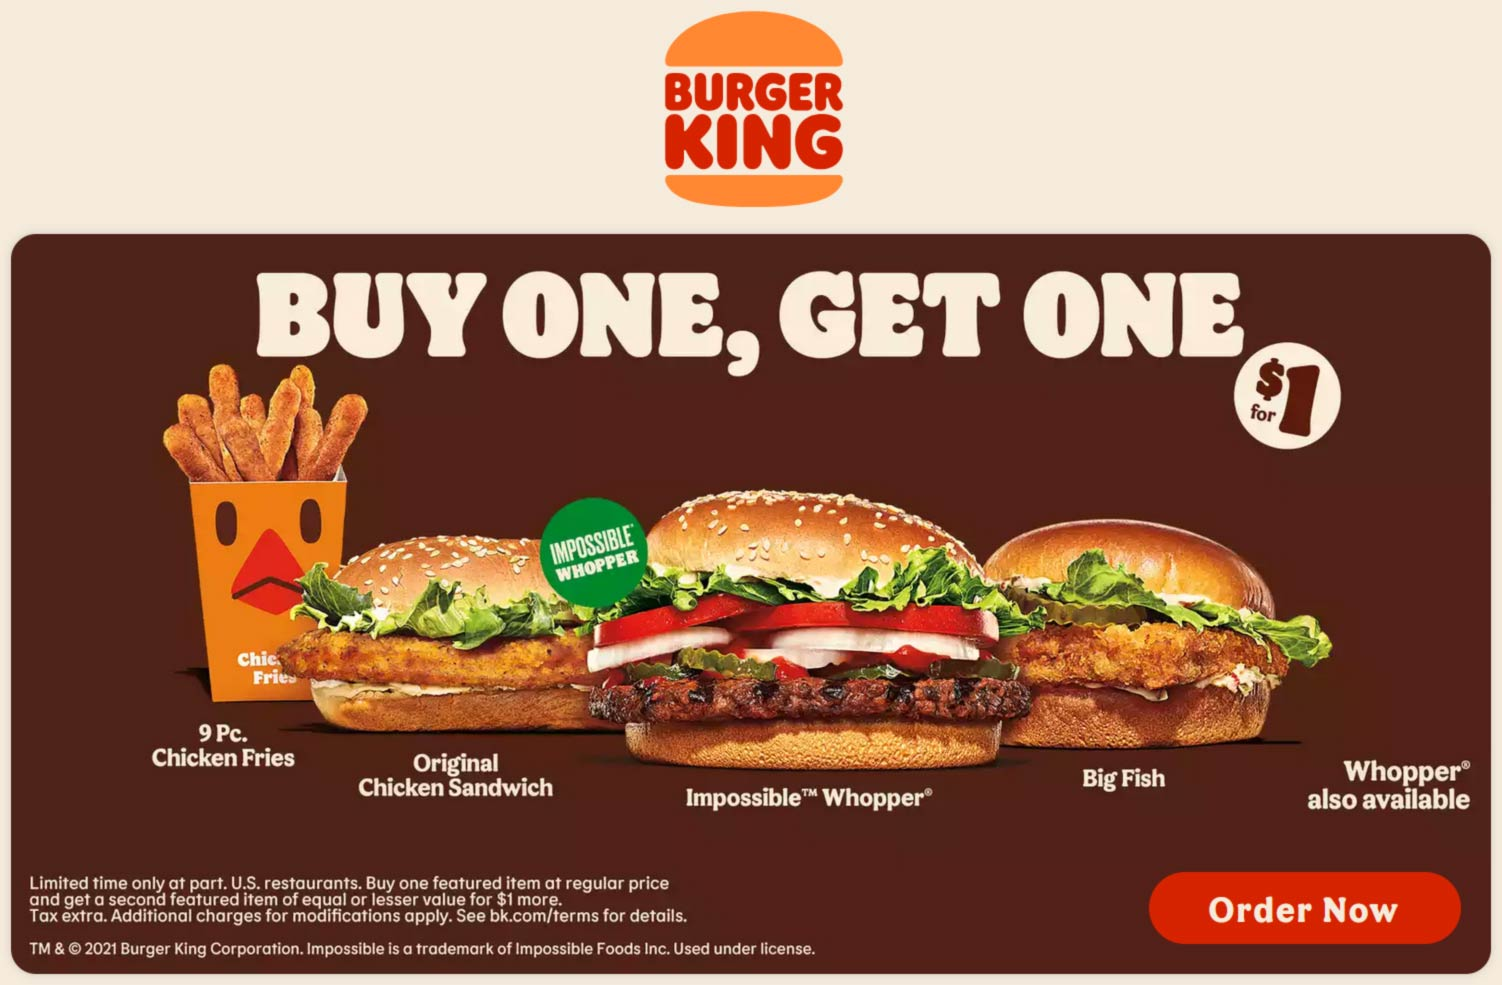 Burger King restaurants Coupon  Second chicken sandwich, fish or impossible whopper for $1 at Burger King #burgerking